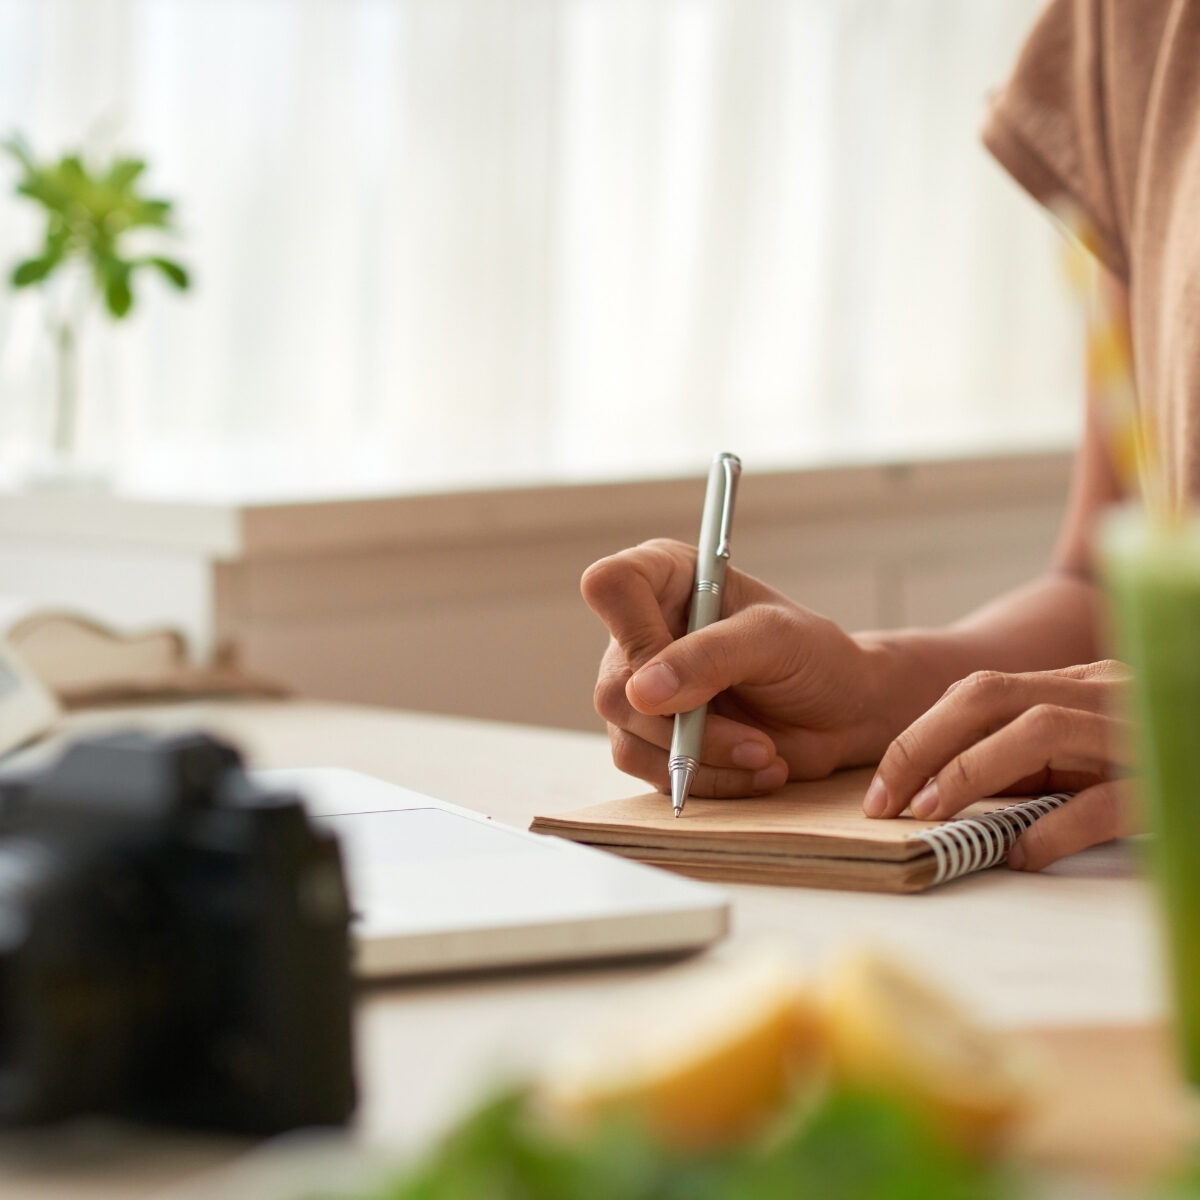 lady writing goals and tracking progress on notebook